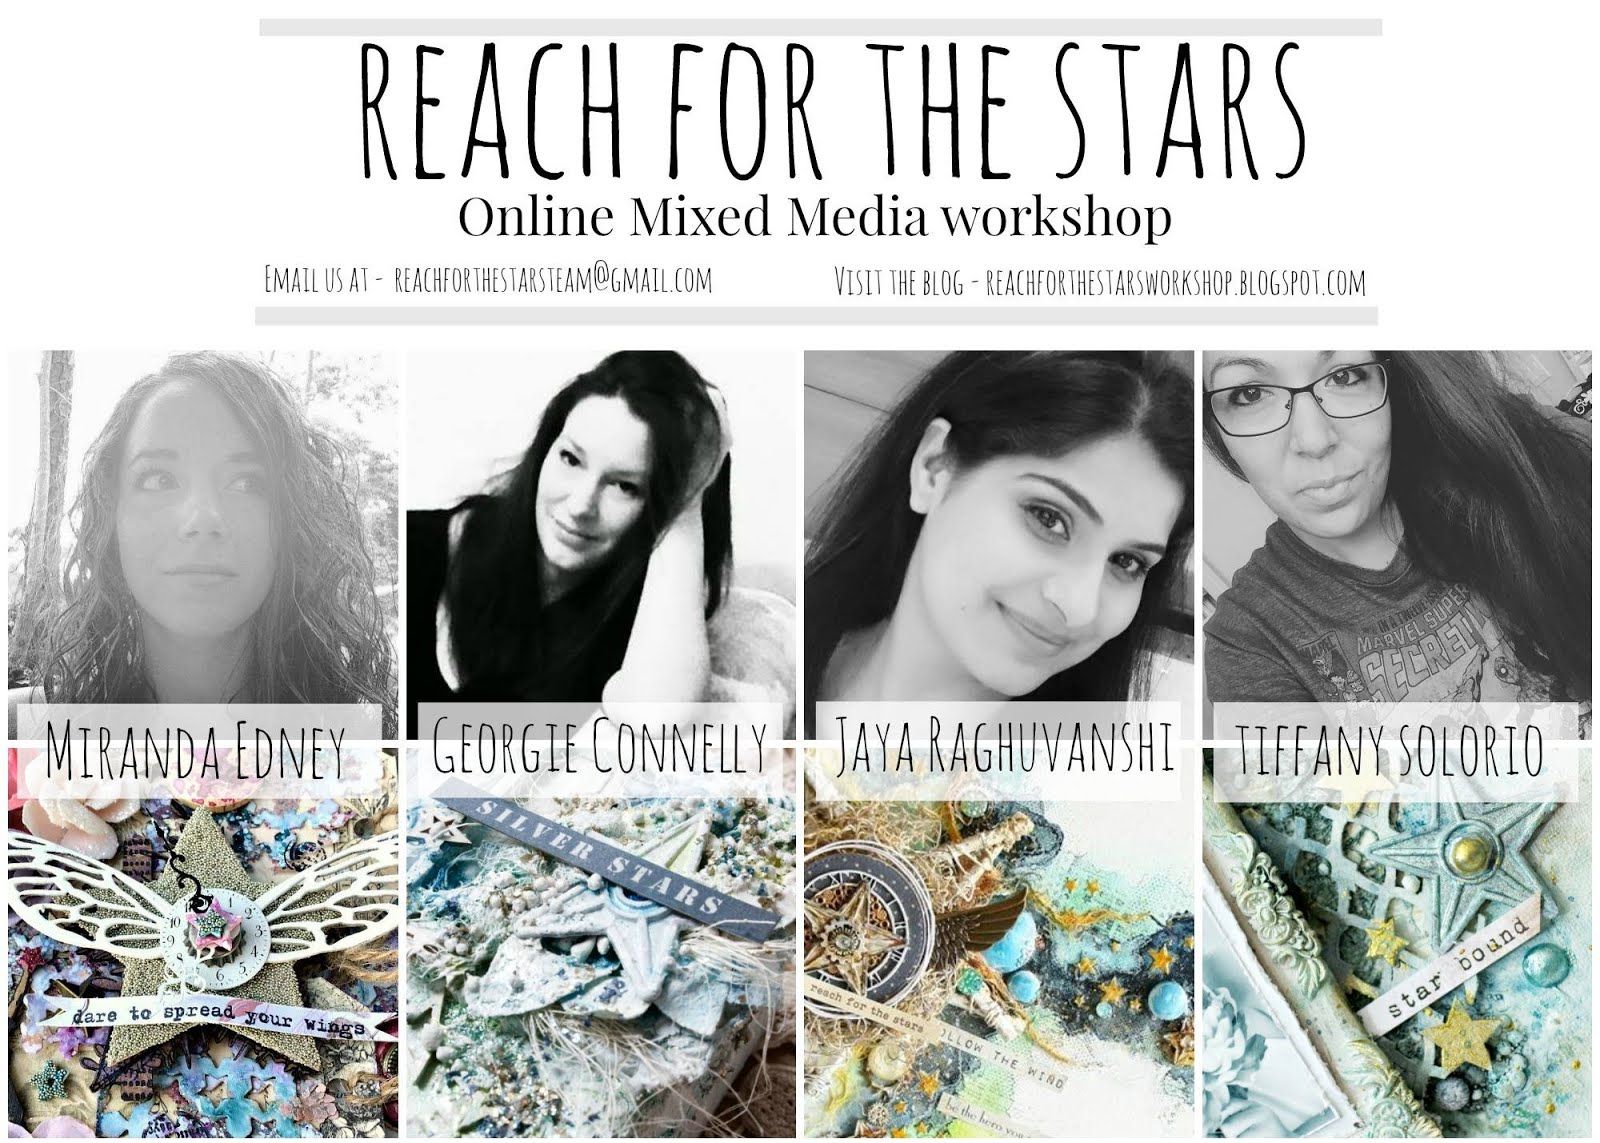 Our workshops at Reach For the Stars